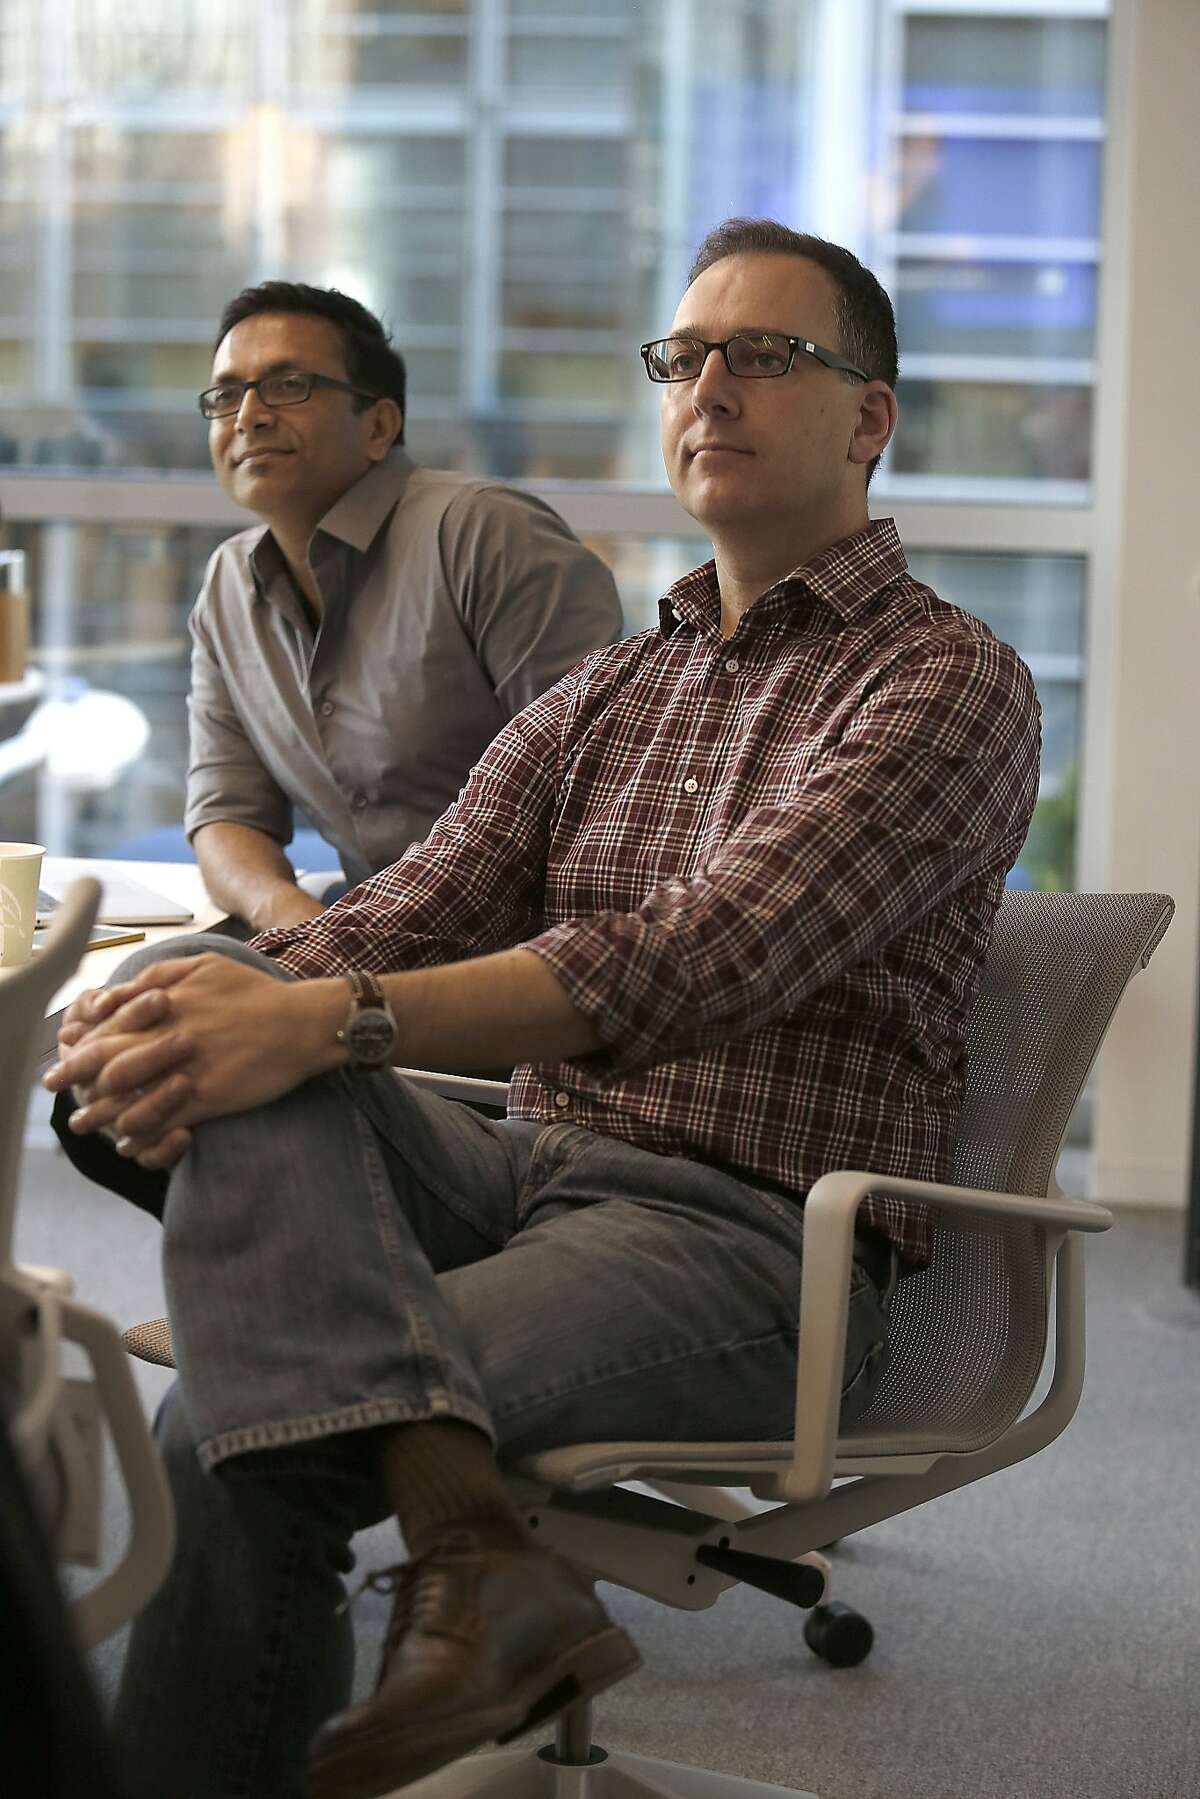 VP of mobile product Joff Redfern (front) and director of user design Hemendra Kumar (back) watch a live feed from Anaheim about new design app at LinkedIn in their office in San Francisco, Calif., on Wednesday, October 14, 2015.